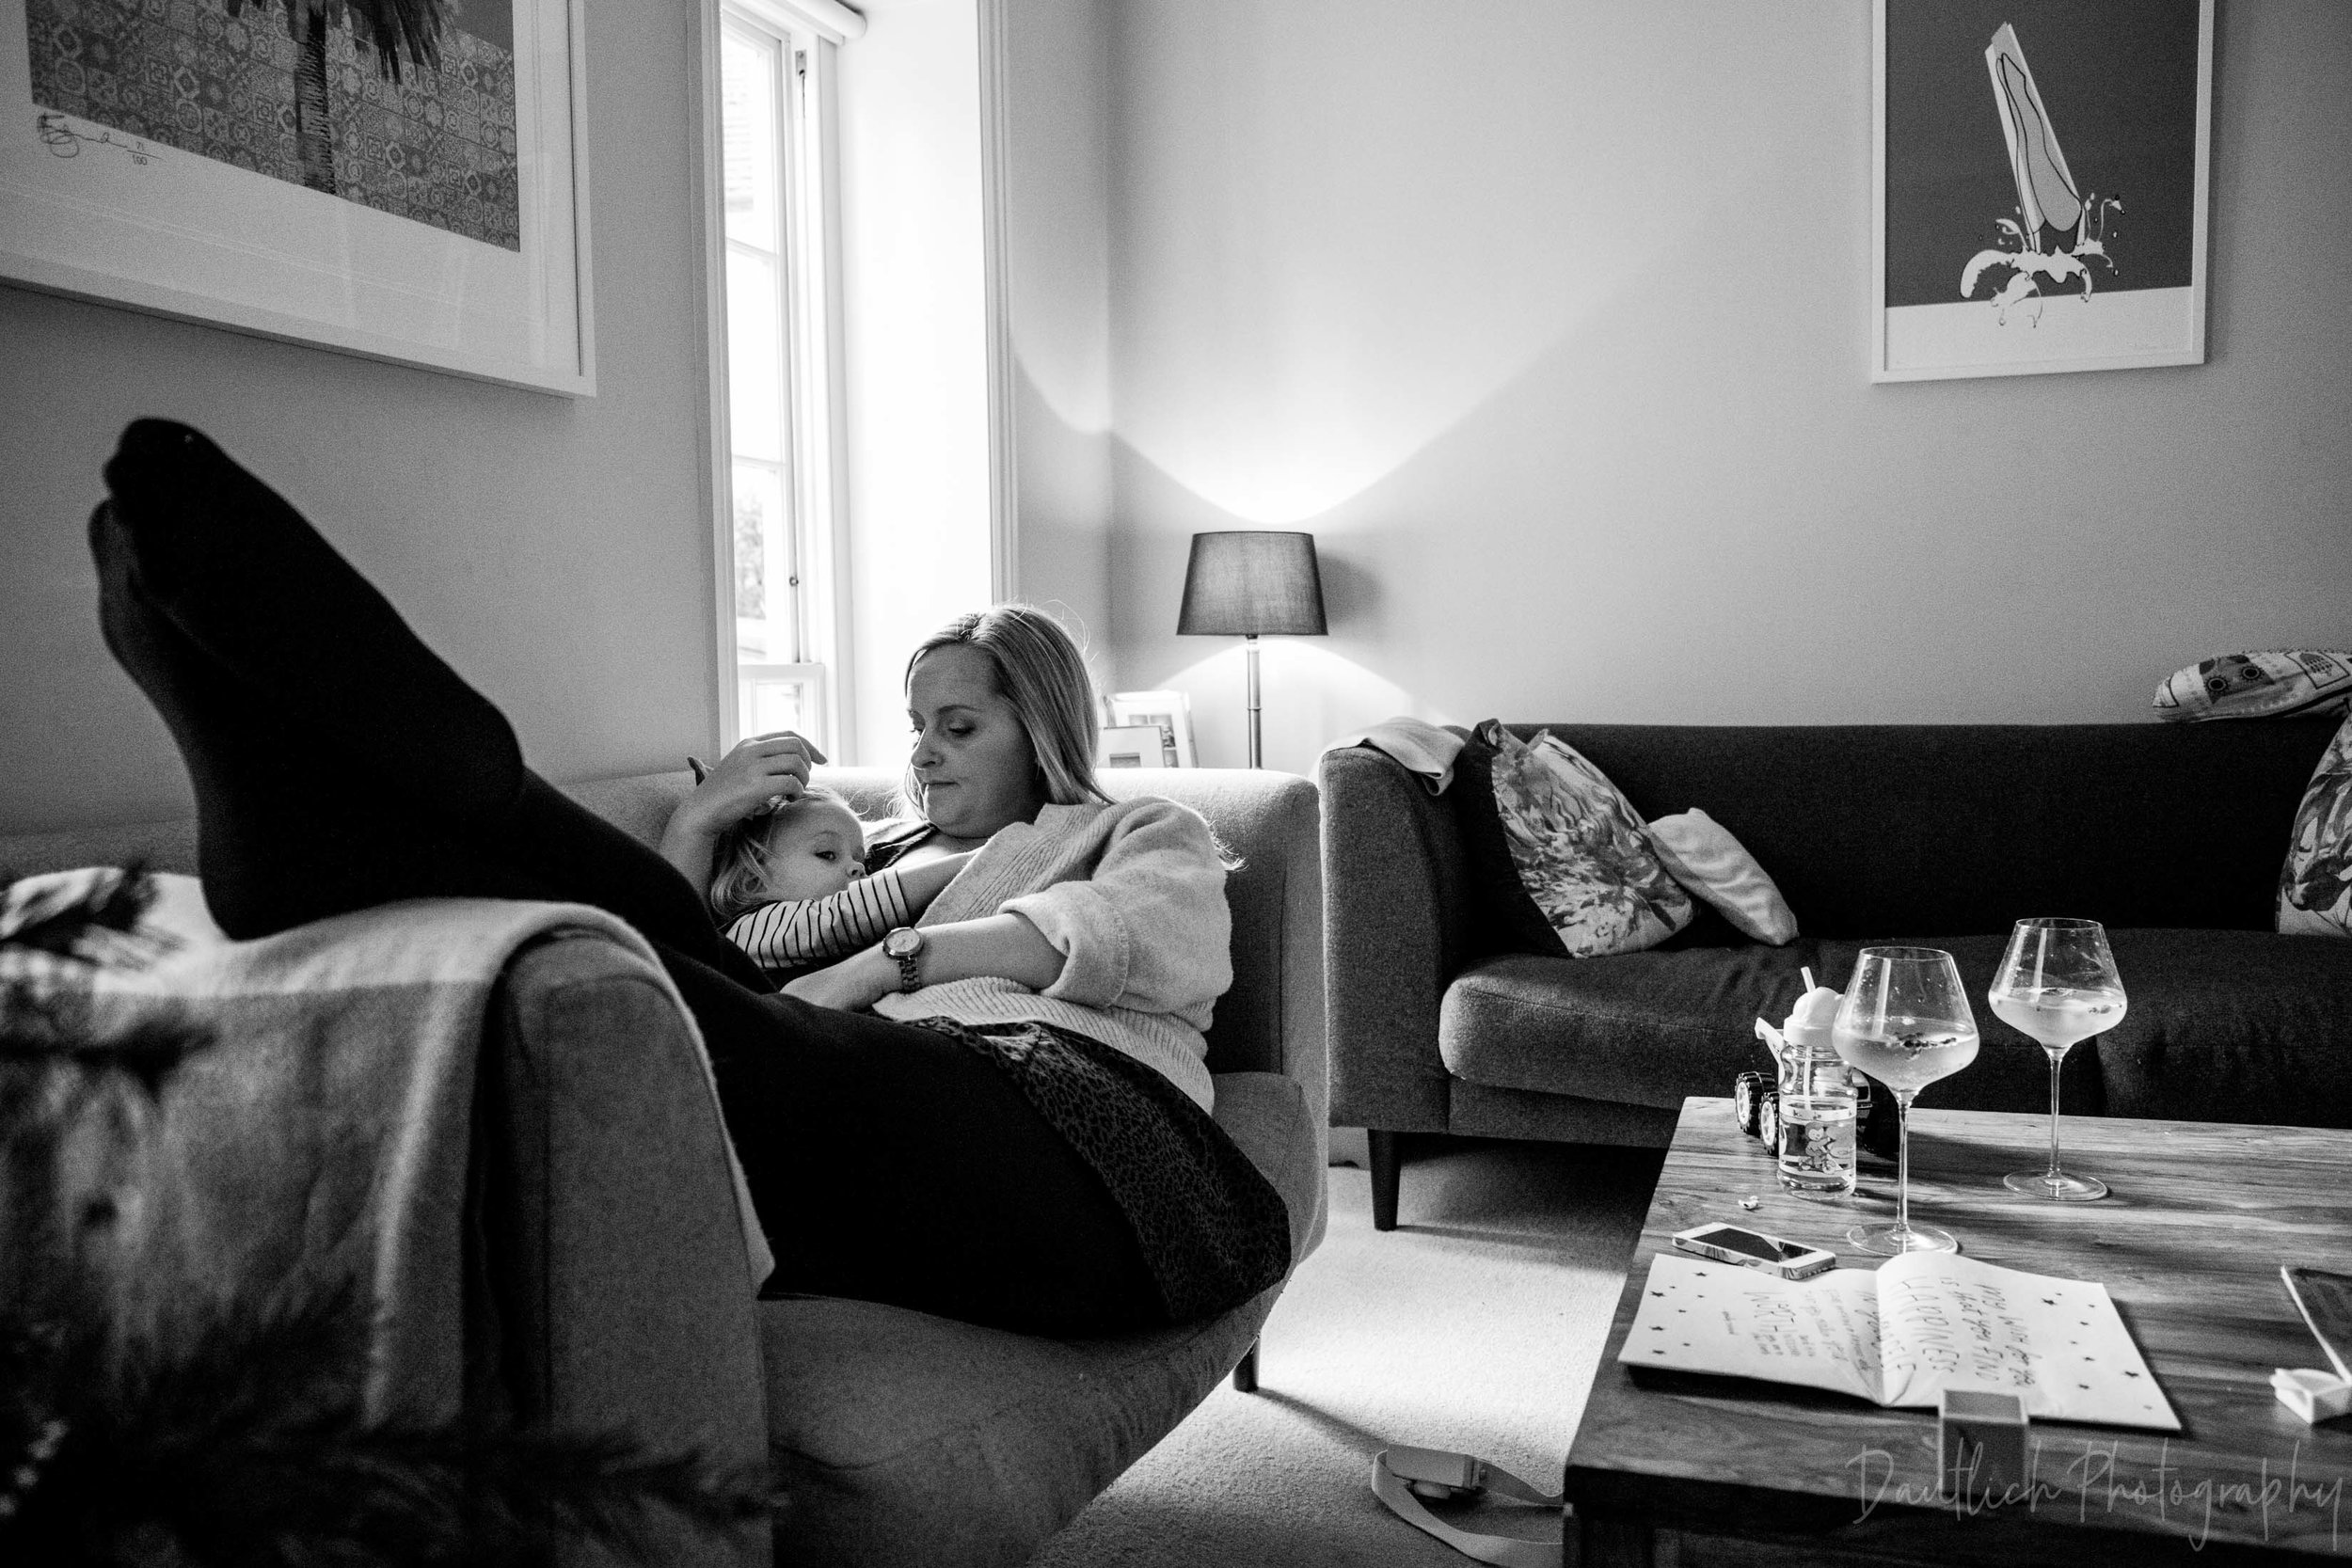 Lewis-family-photoshoot-mum-nursing-toddler-while-lounging.jpg